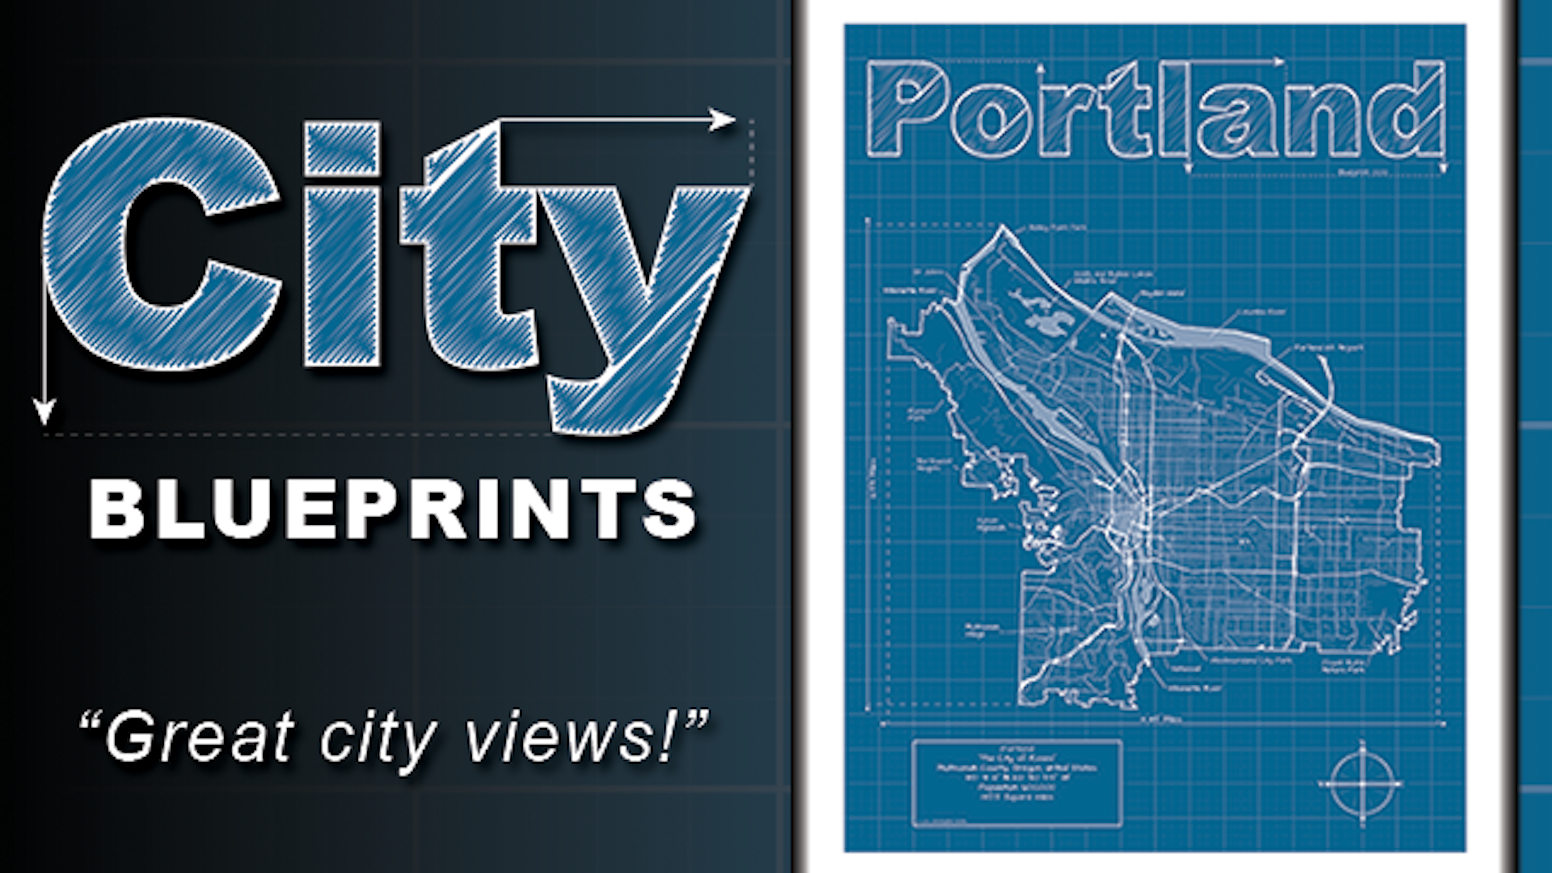 City blueprints artistic city map prints by christopher estes city blueprints artistic city map prints malvernweather